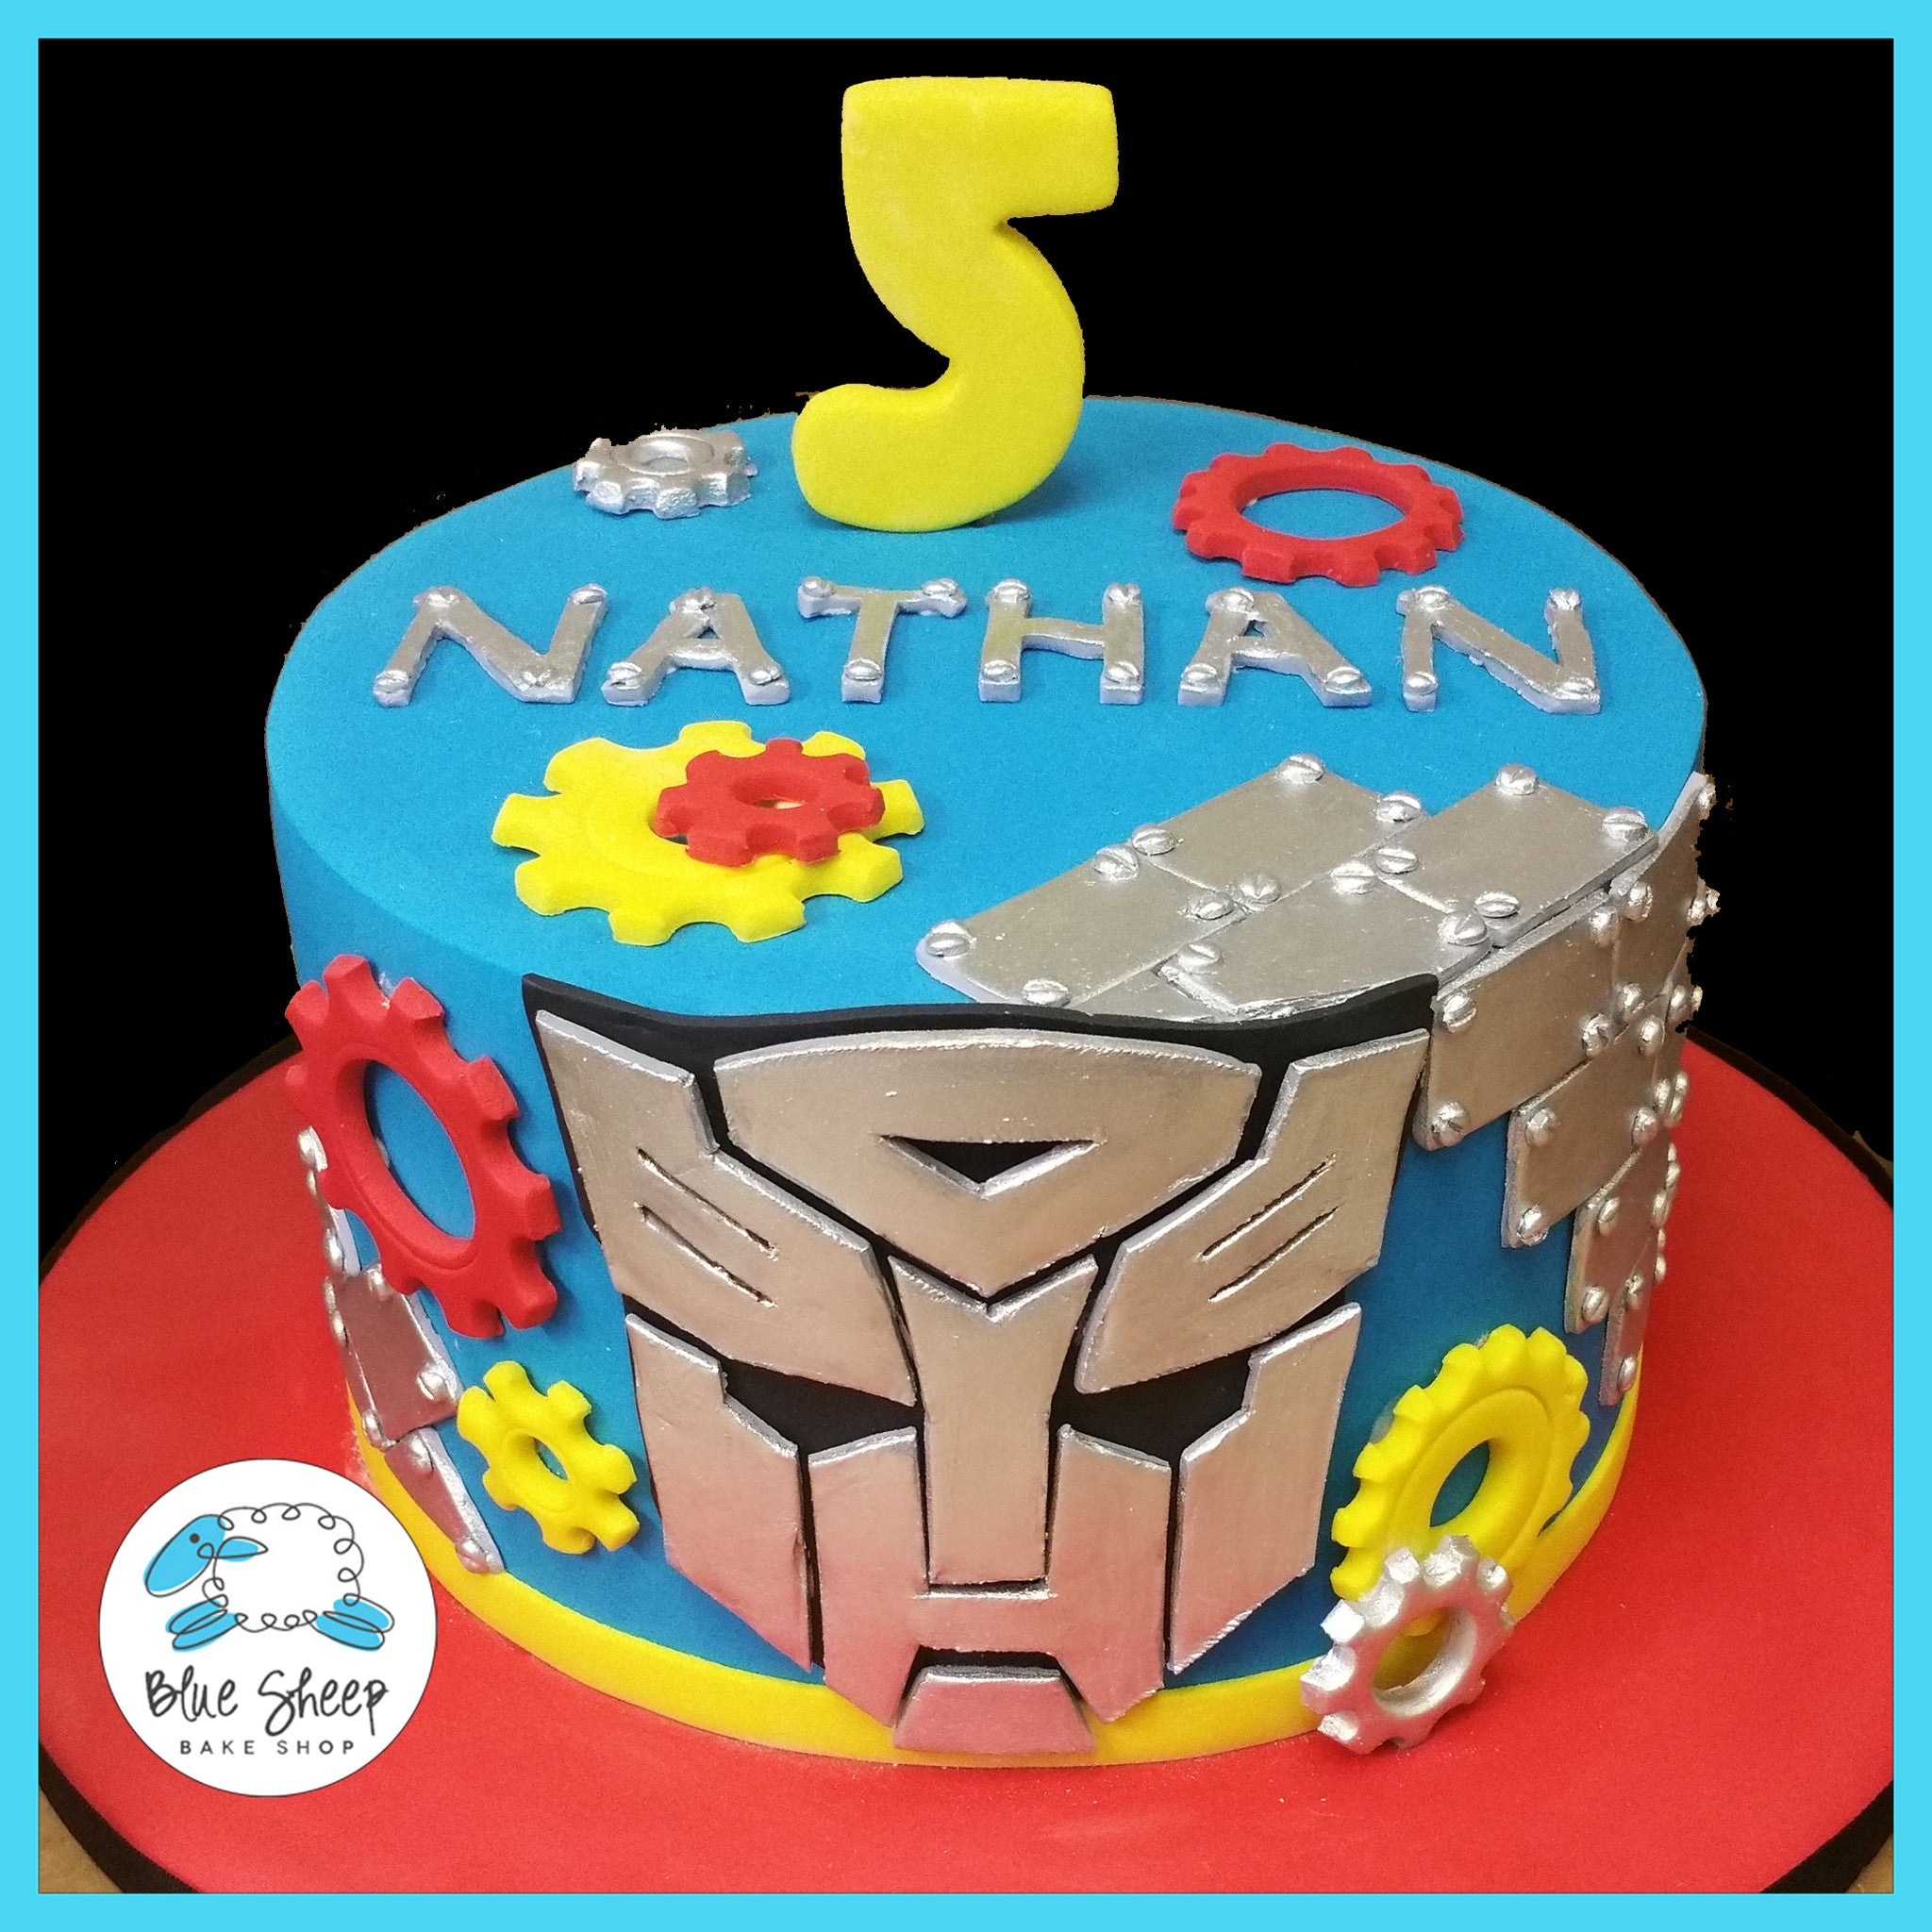 Transformers Birthday Cake | Blue Sheep Bake Shop